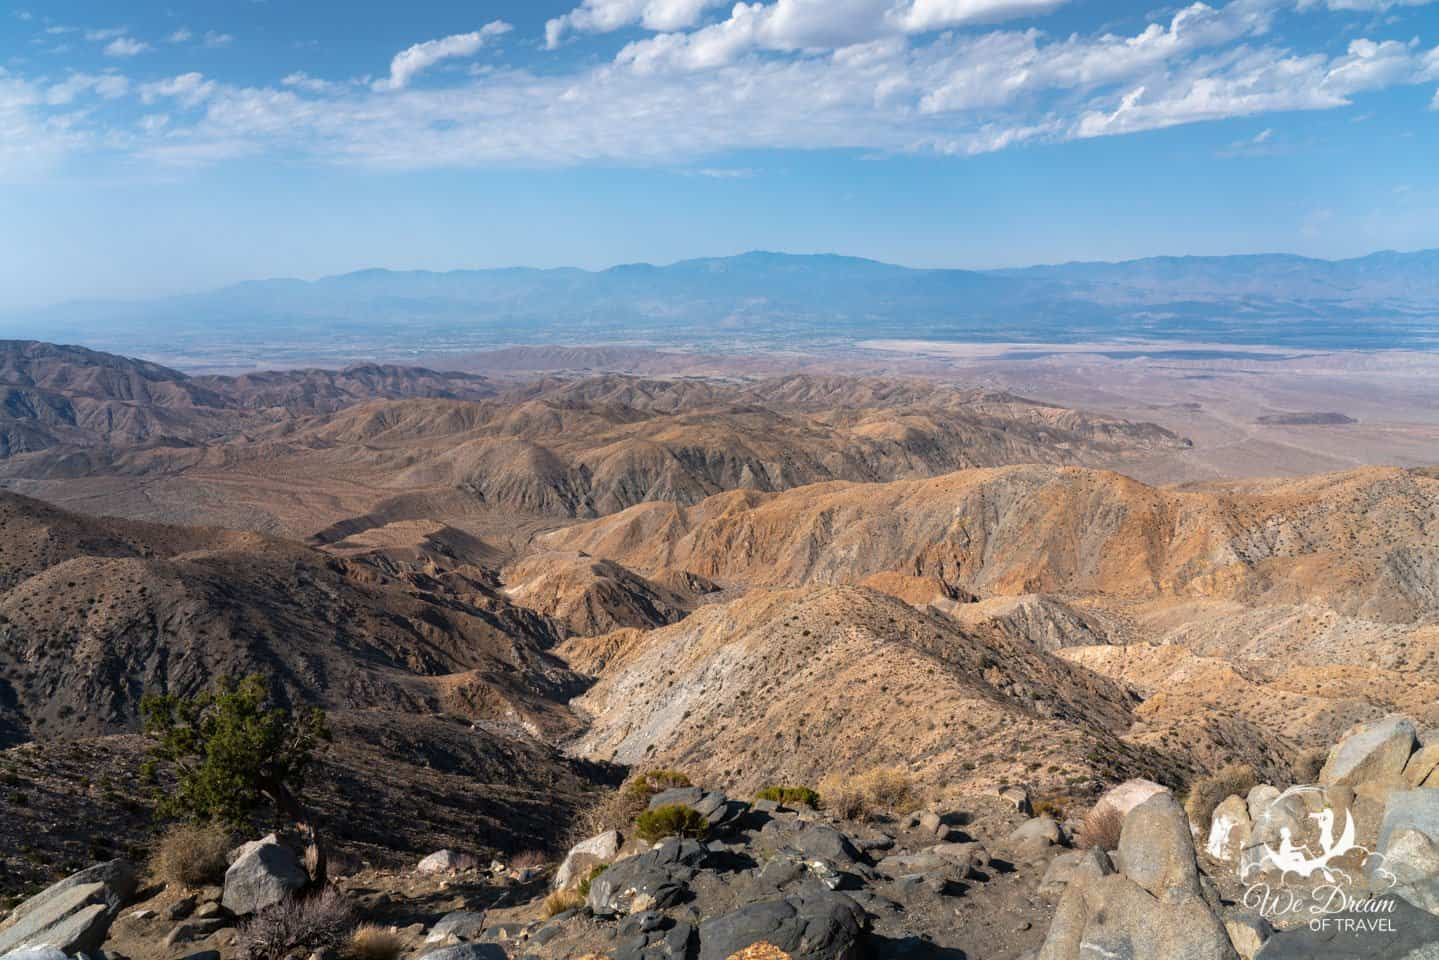 Keys View is the highest accessible point by car in Joshua Tree National Park.